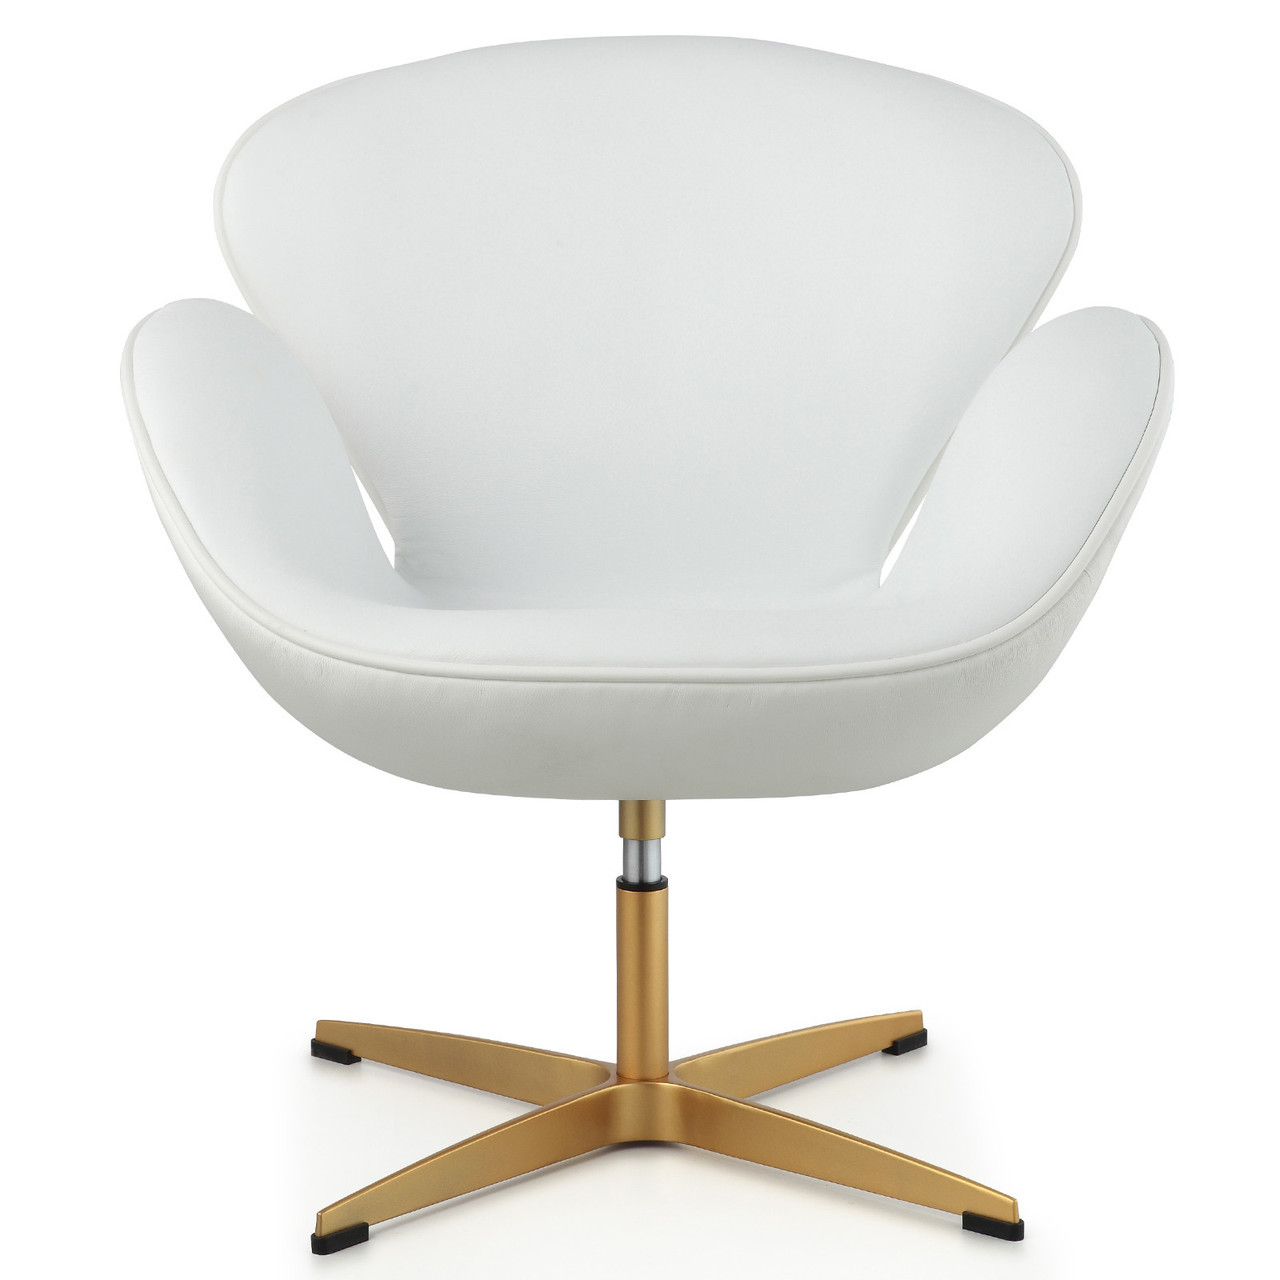 White Leather Egg Chair Gold 43 White Italian Leather M353 Modern Swan Chair Zin Home